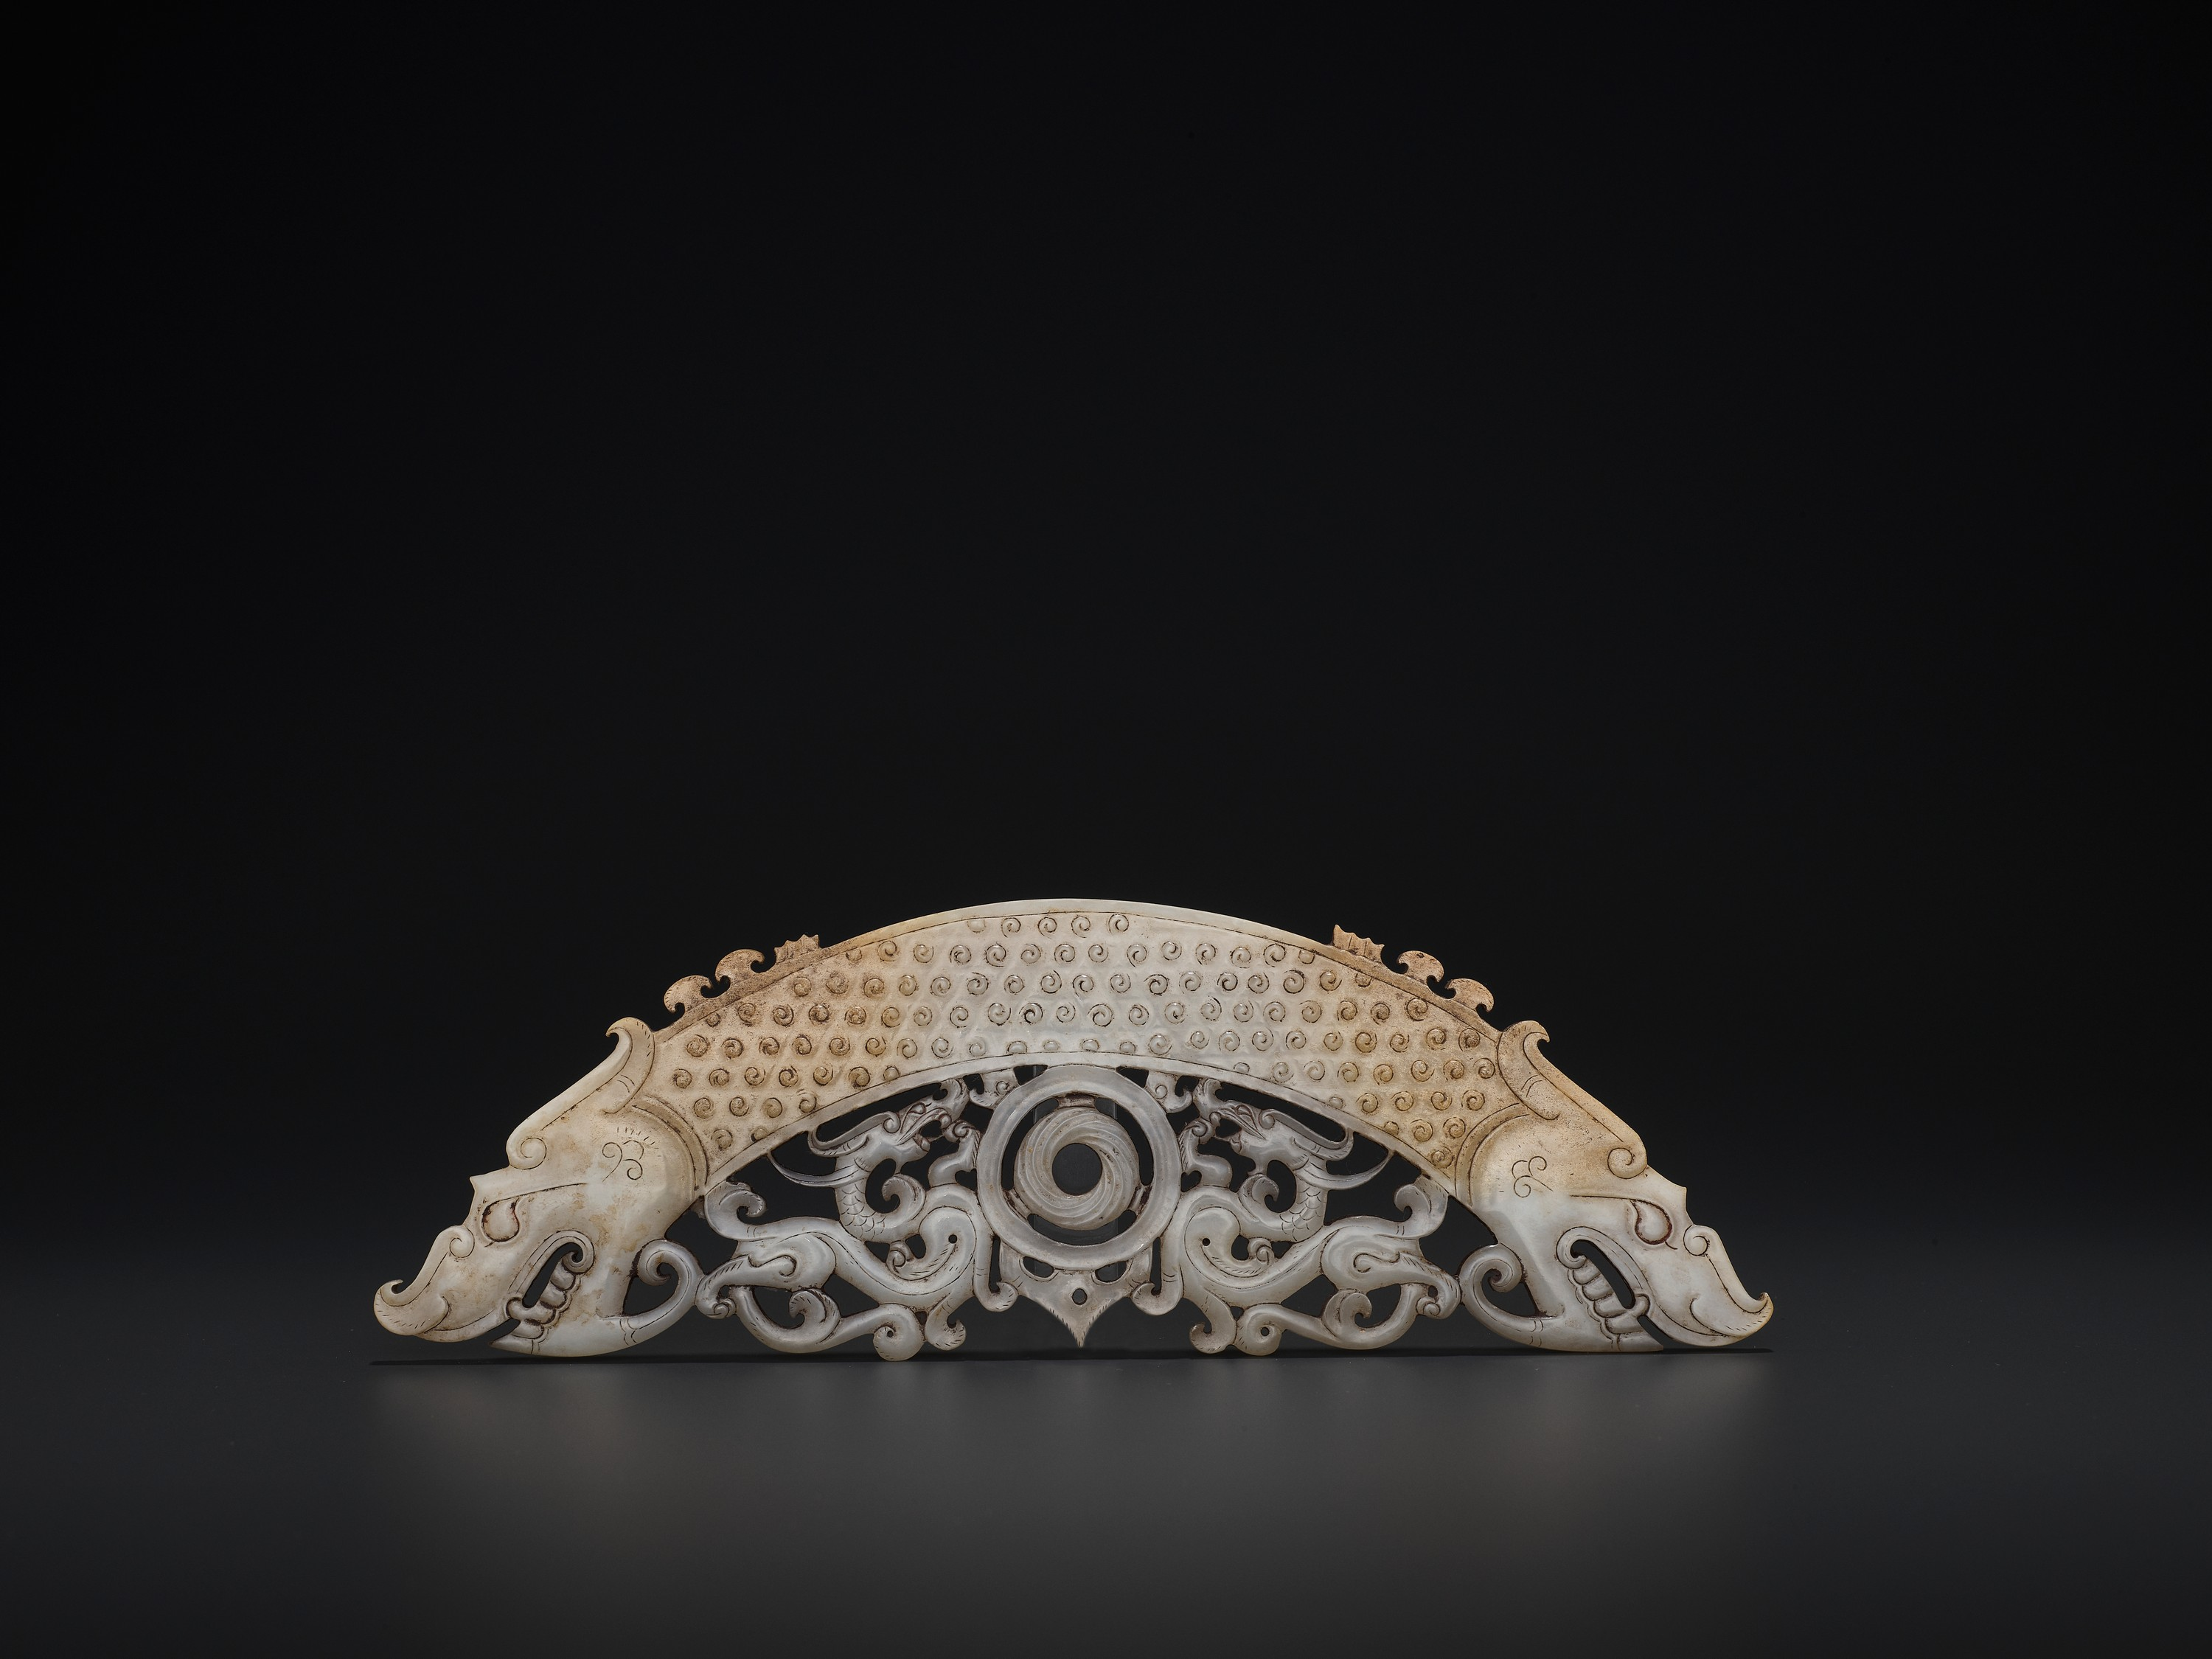 A WHITE AND RUSSET JADE 'DOUBLE DRAGON' PENDANT, HUANG, LATE EASTERN ZHOU TO HAN - Image 2 of 9